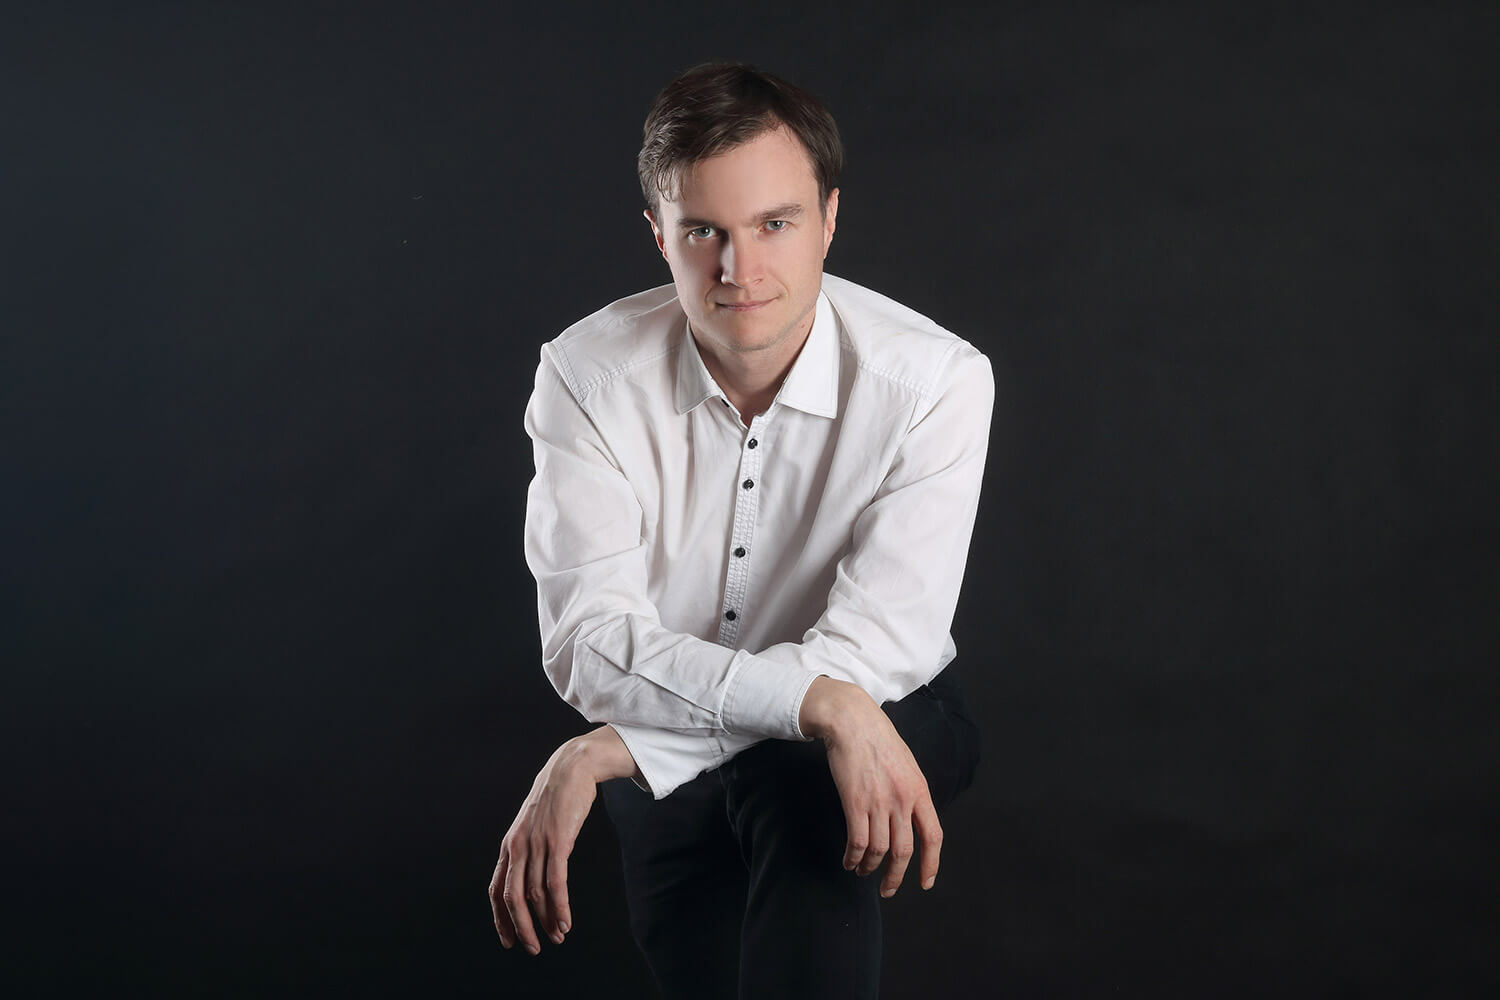 male business portrait in a white shirt on a dark background